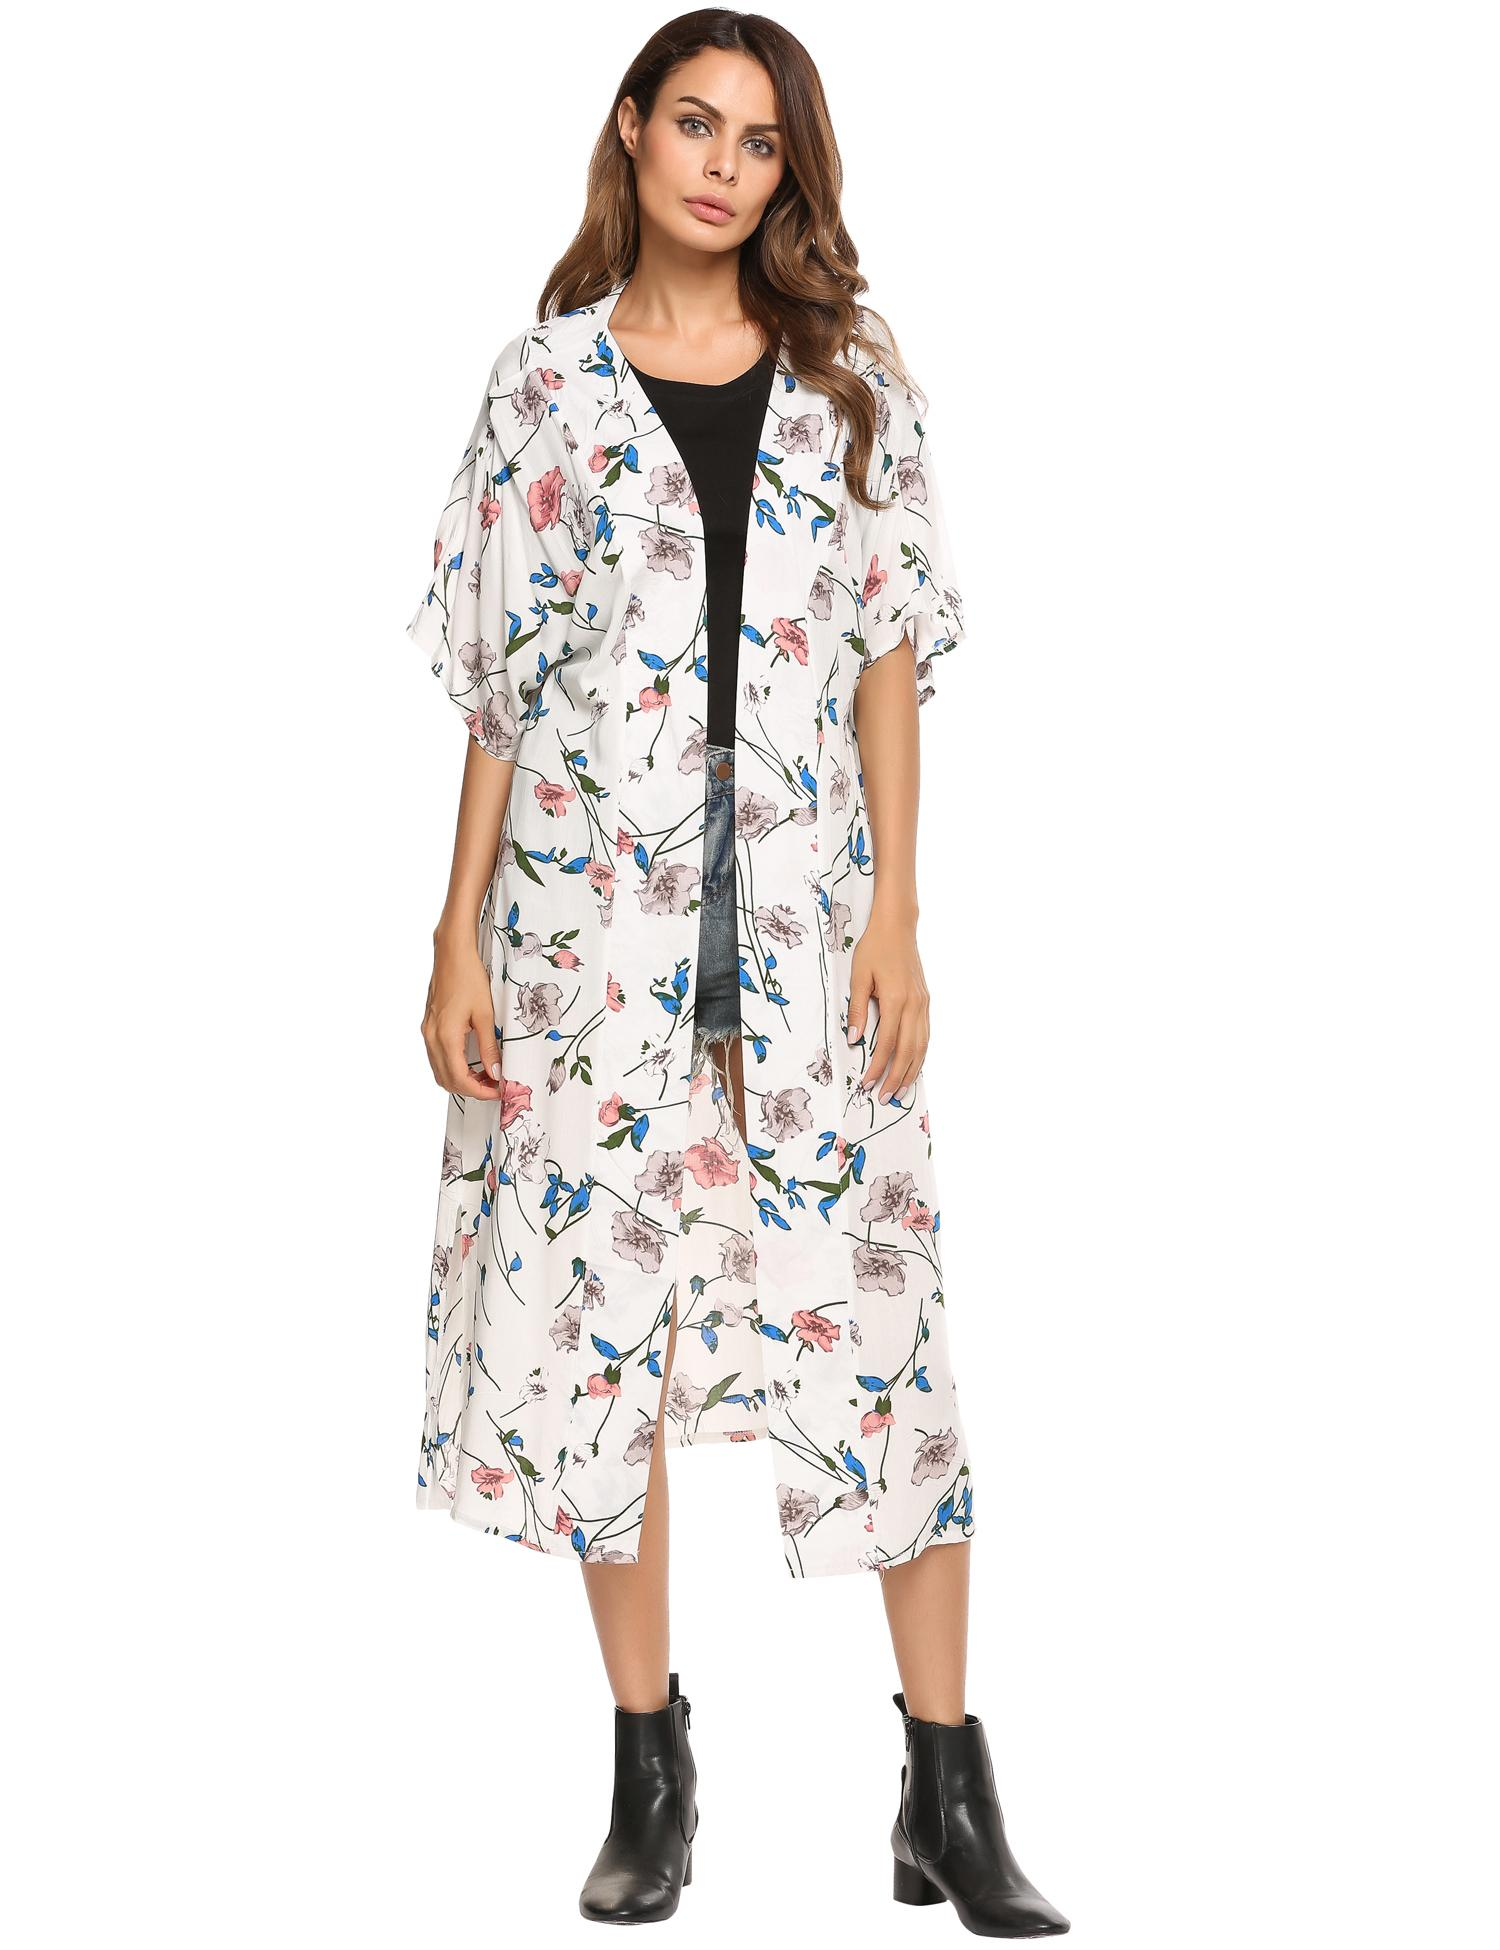 b407abf46 Women Short Sleeve Floral Front Open Cardigan Long Loose Kimono Style  Cover-up HFON